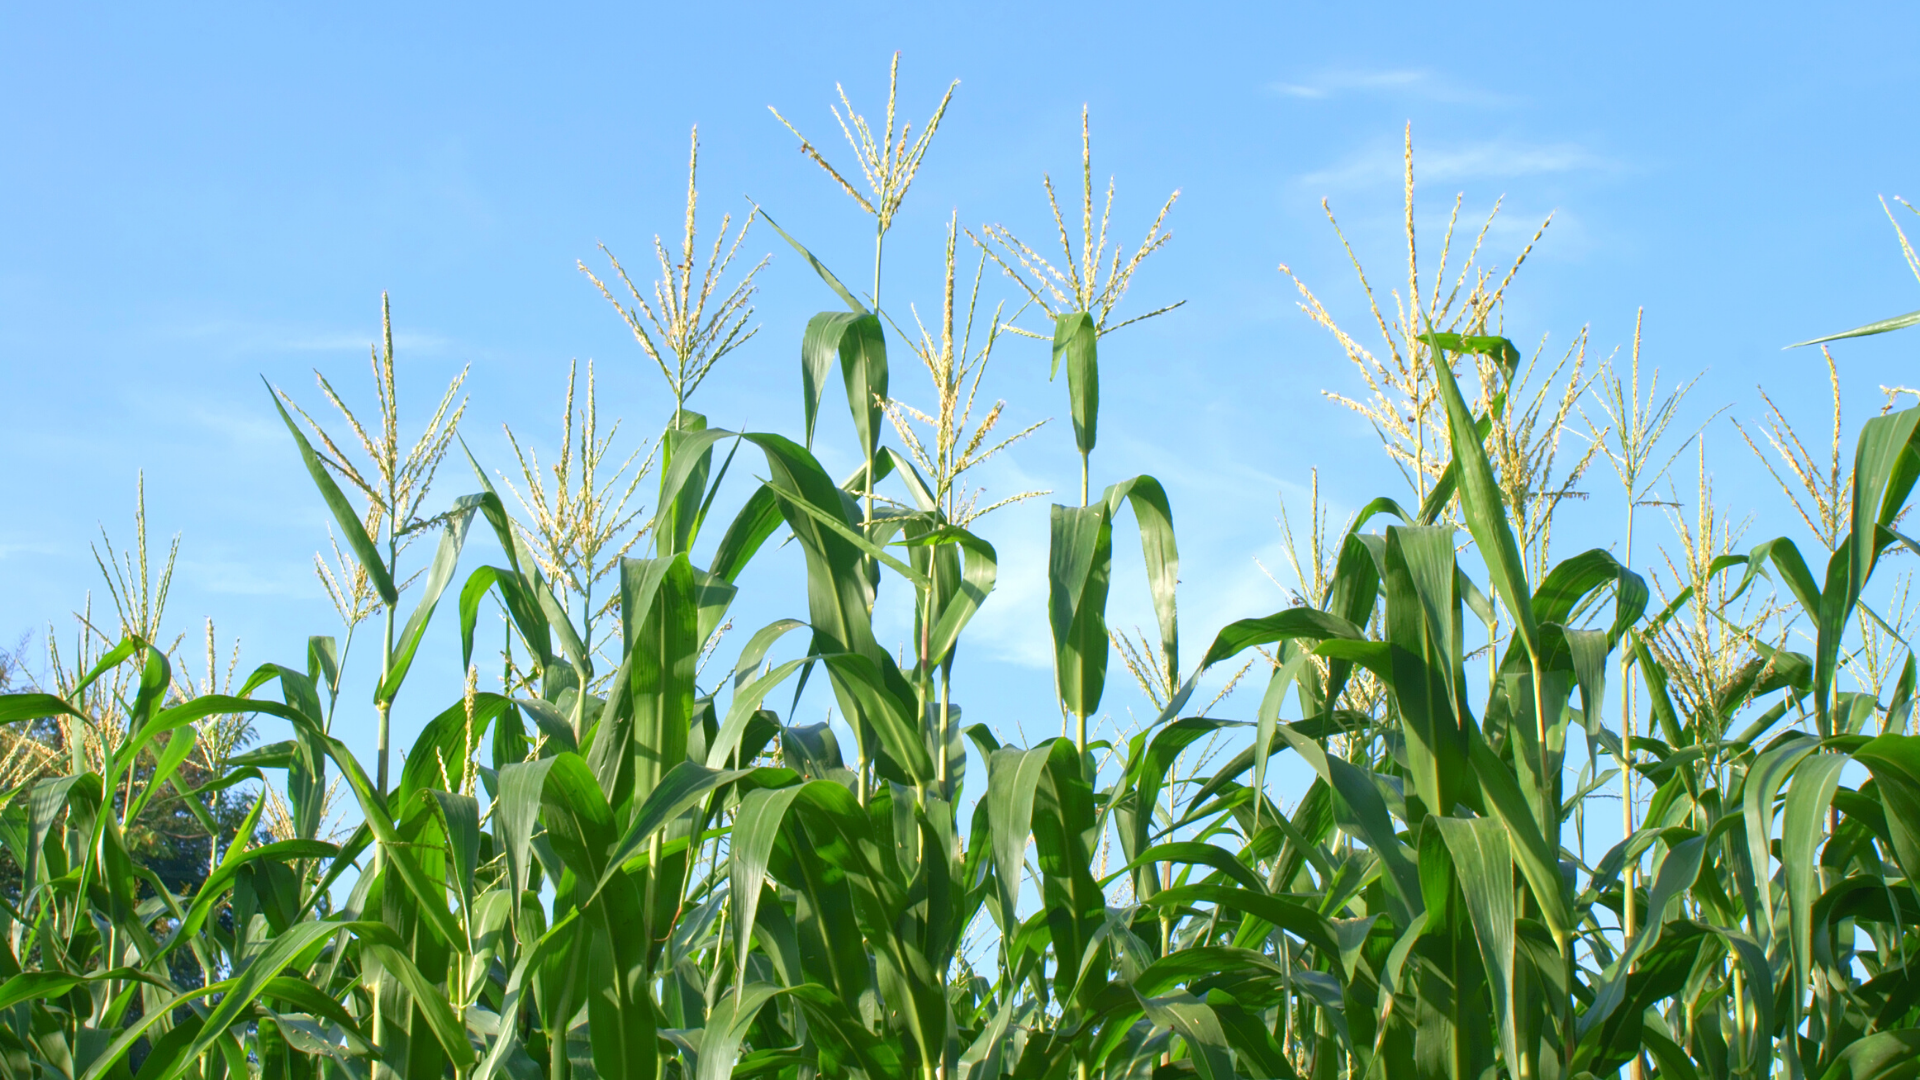 A ban on U.S. GMO corn could be an economic boom for Mexico